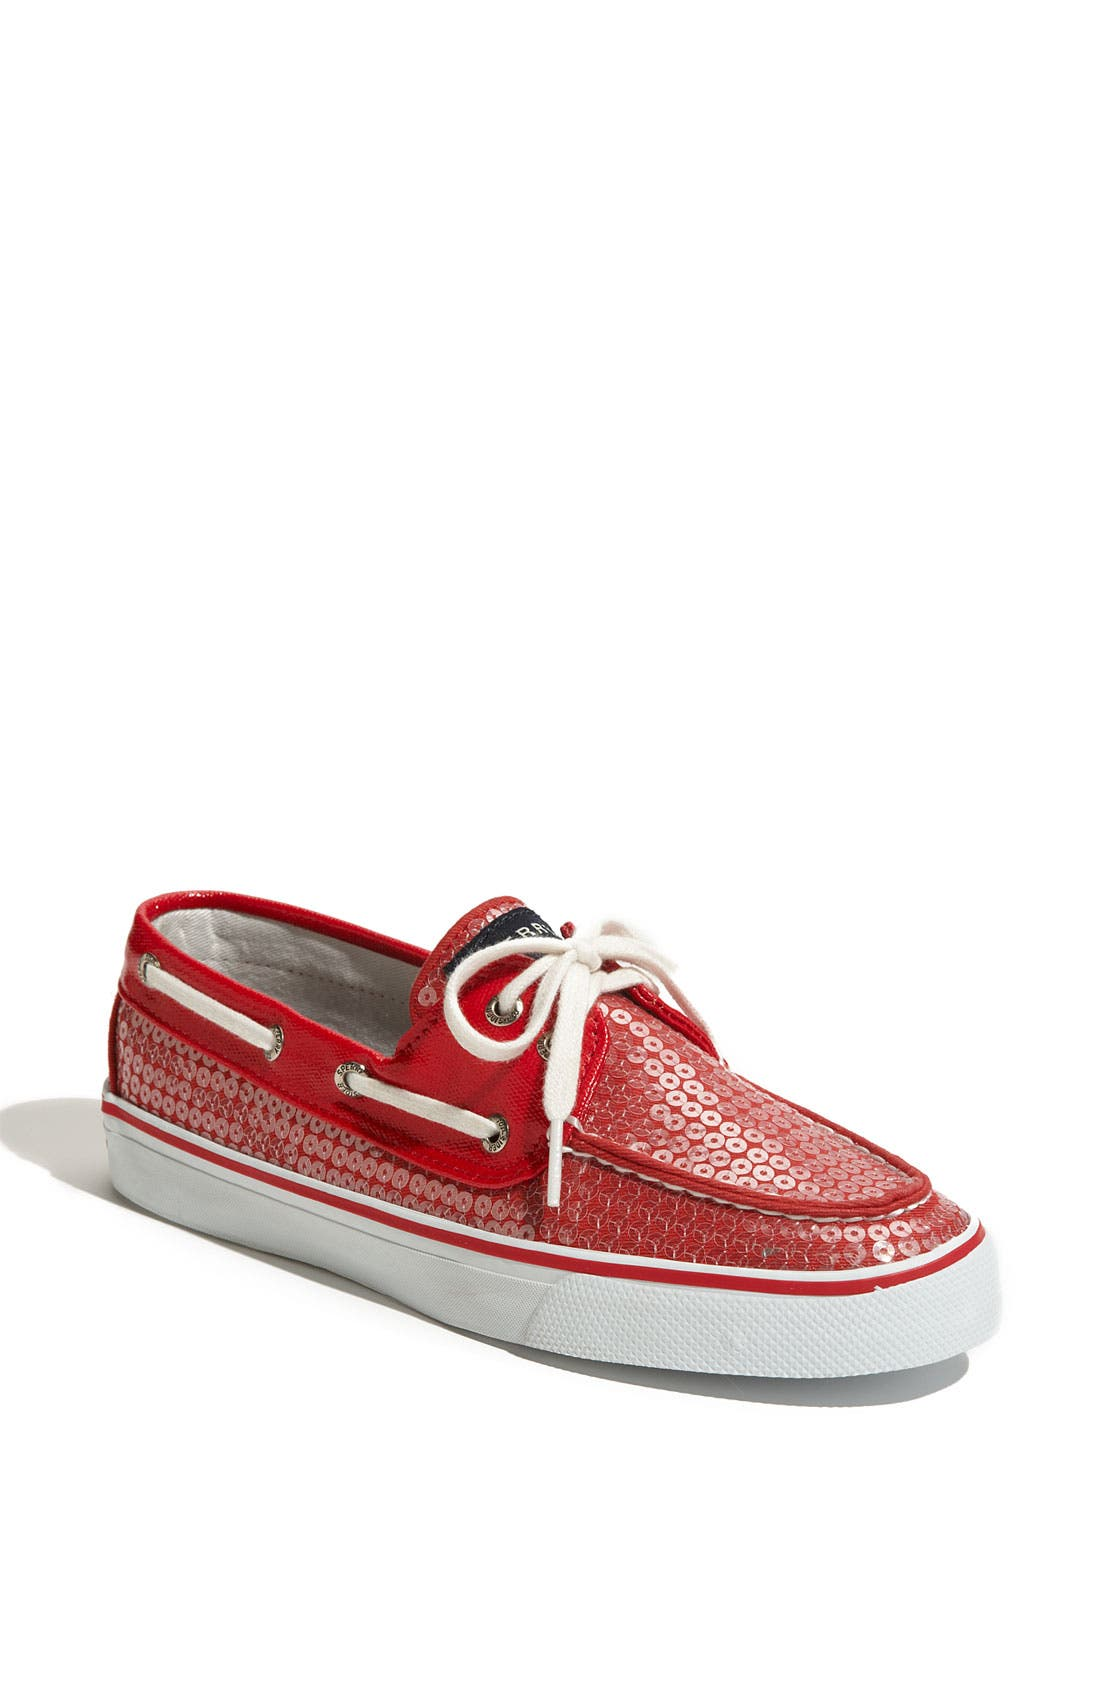 Top-Sider<sup>®</sup> 'Bahama' Sequined Boat Shoe,                             Main thumbnail 35, color,